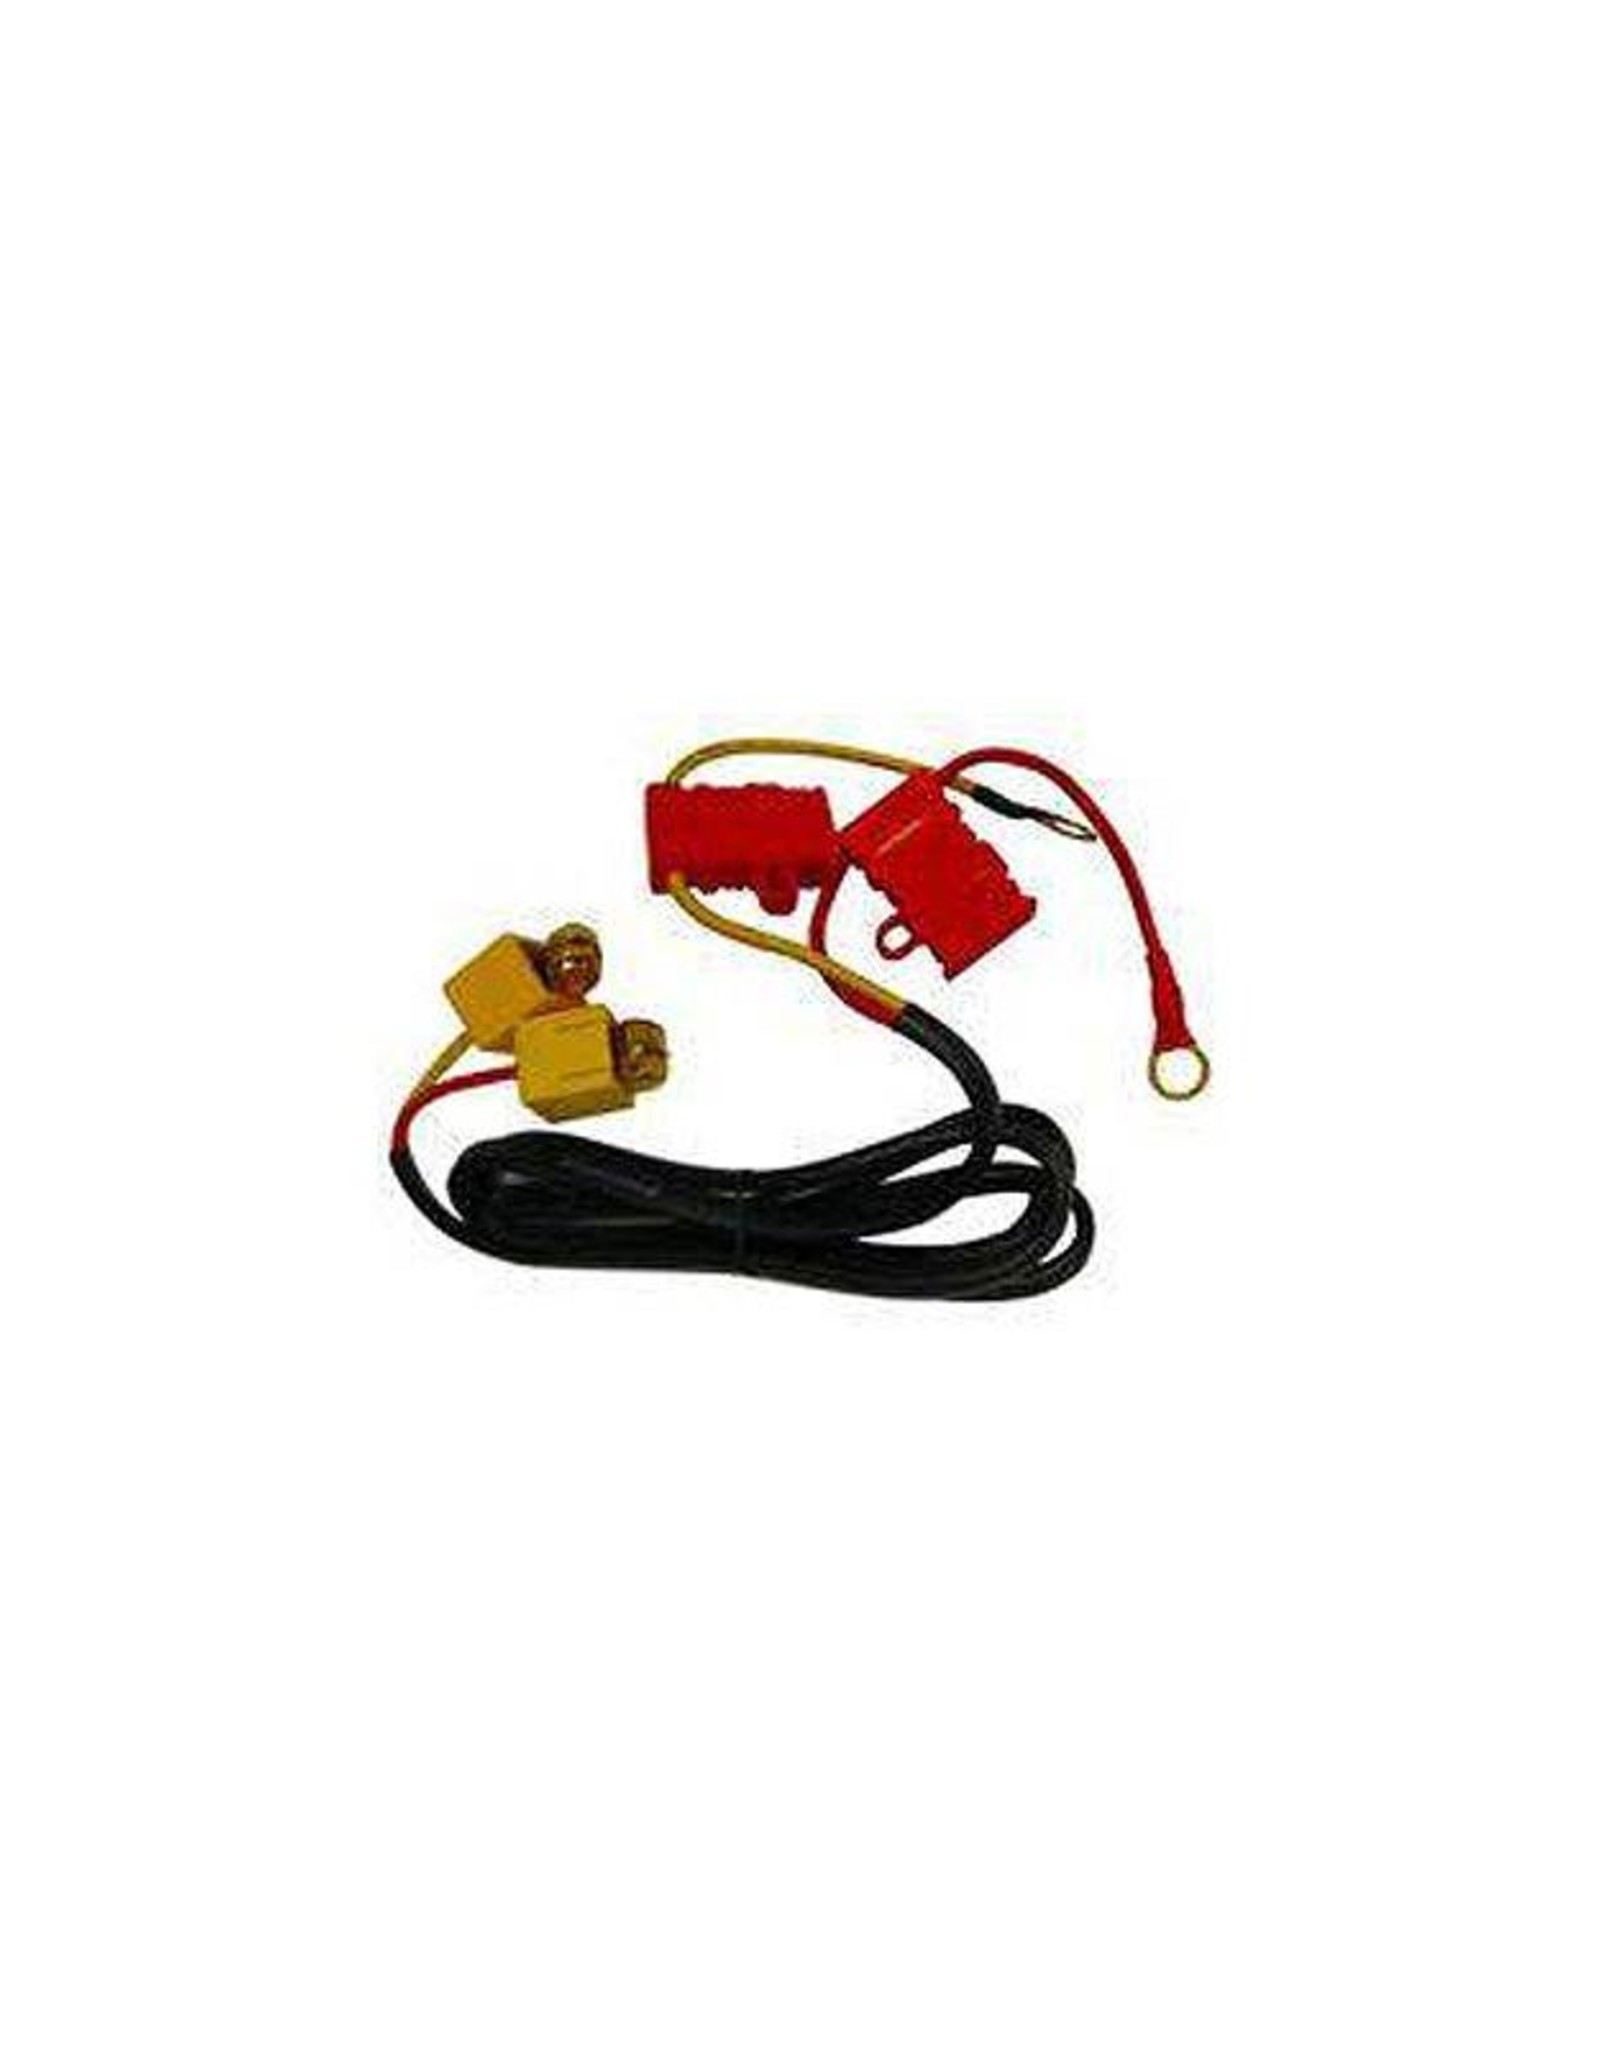 CABLE EXTENDER 15FT FOR PROSPORT 51070